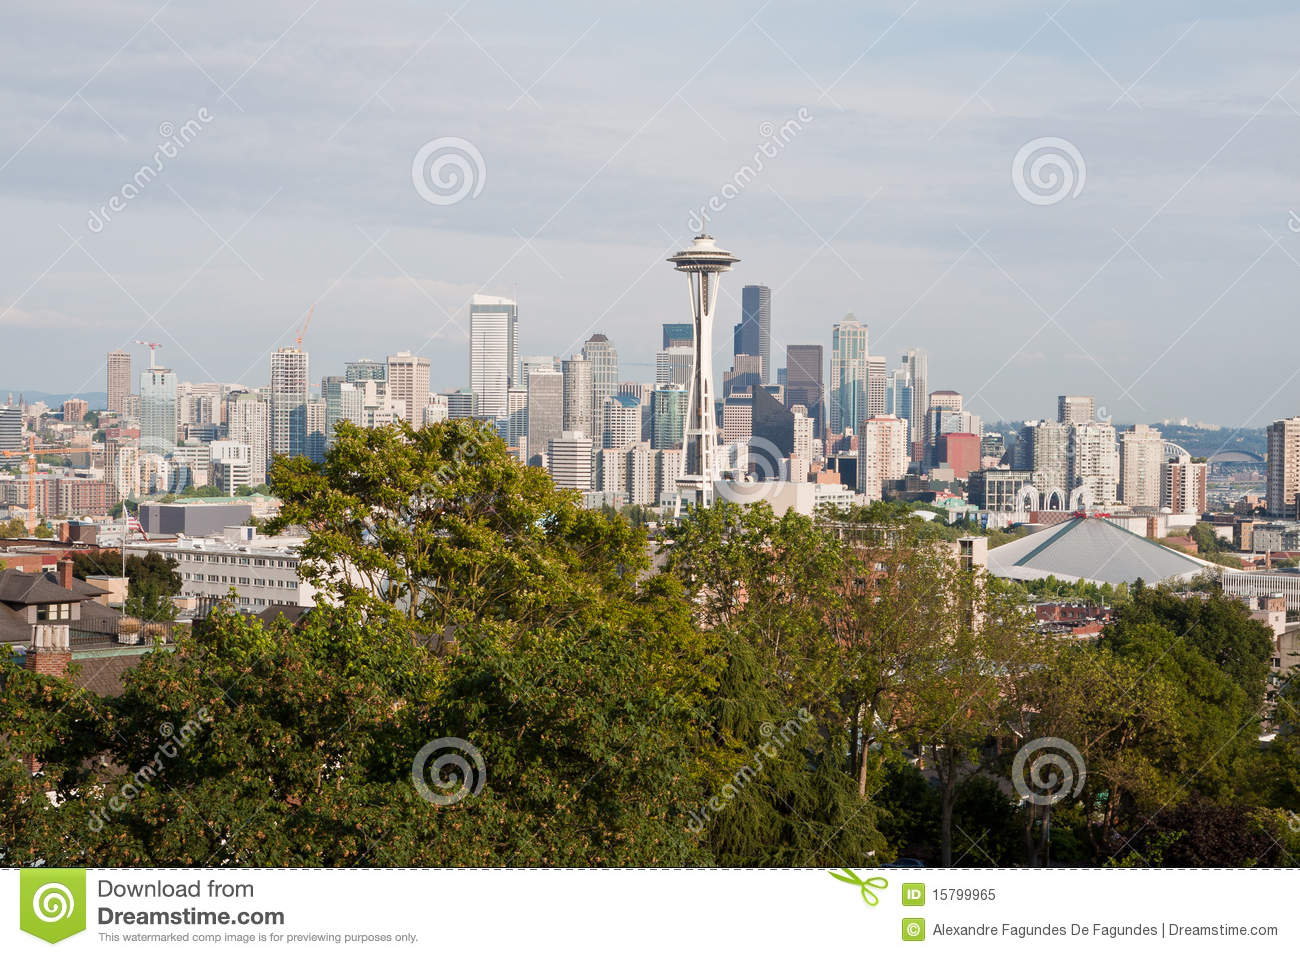 Pejzaż miejski Seattle